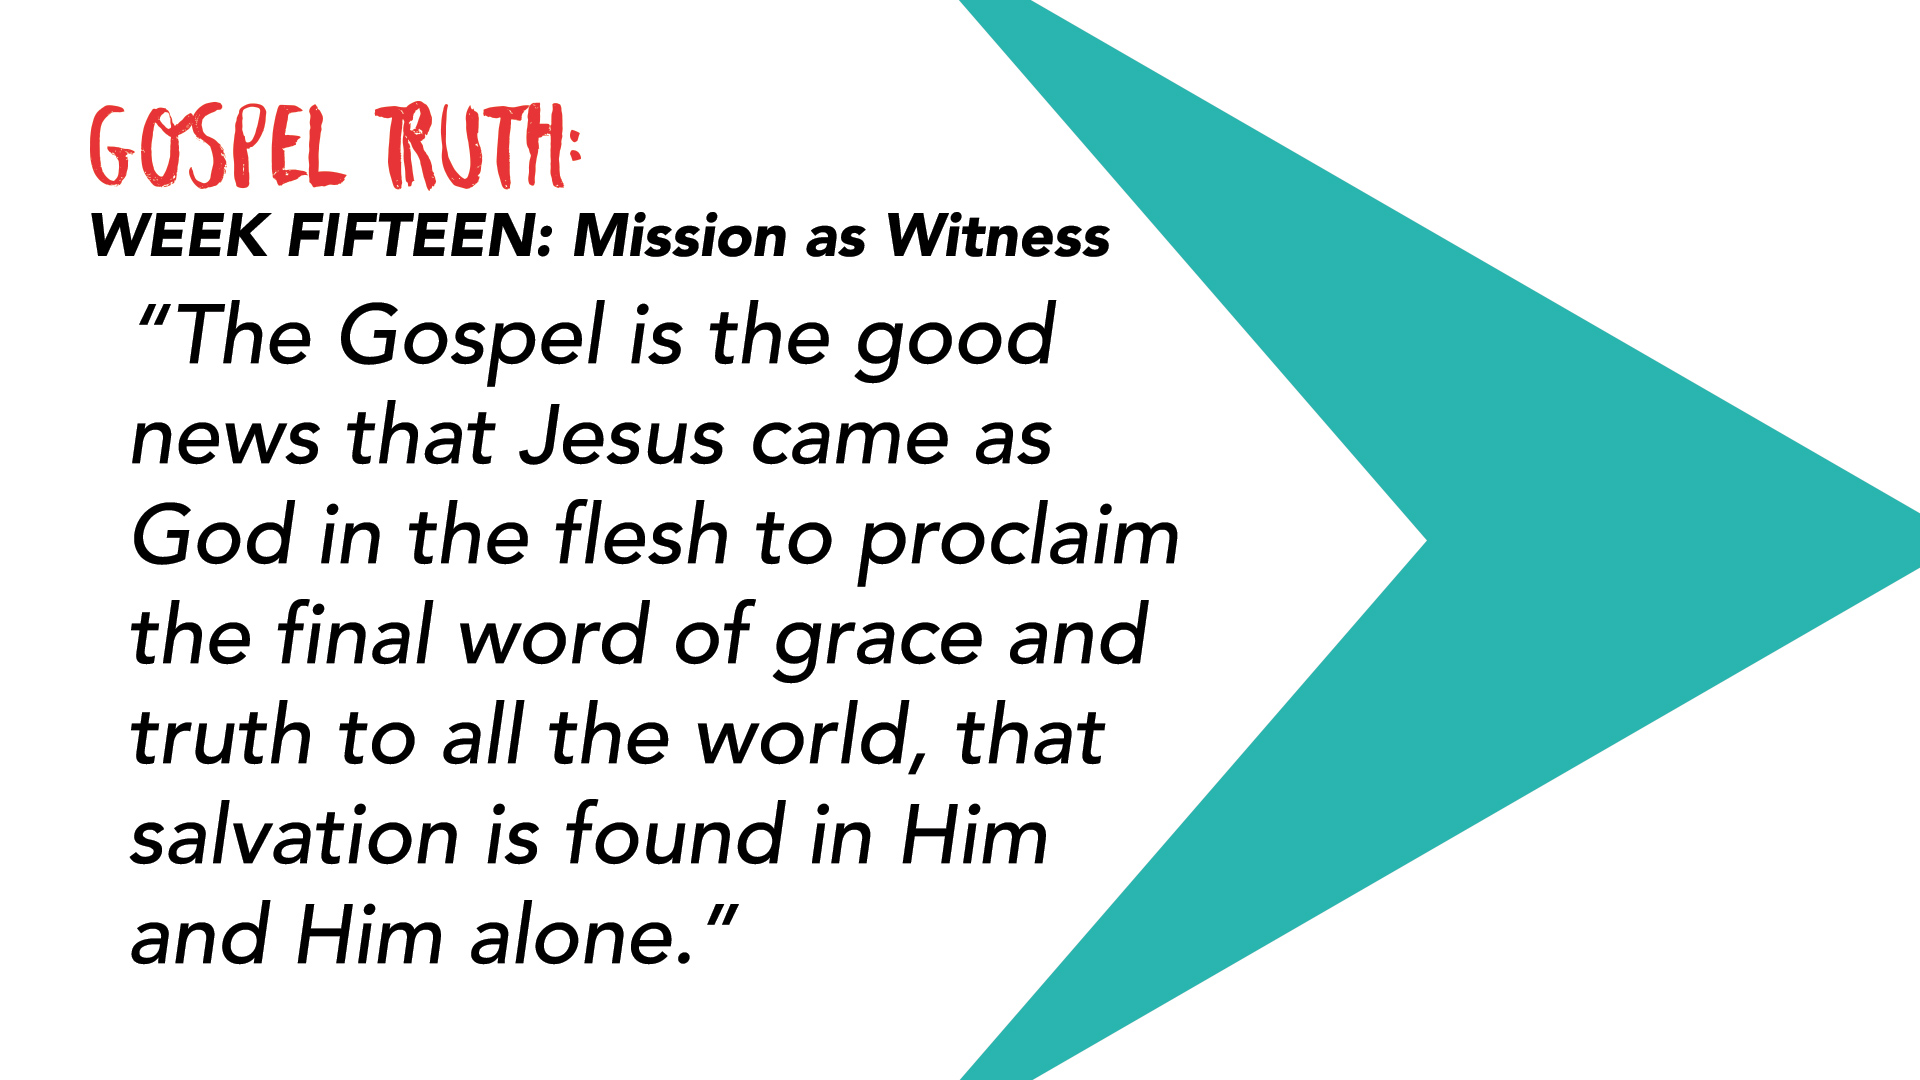 The Gospel is the good news that Jesus came as God in the flesh to proclaim the final word of grace and truth to all the world, that salvation is found in Him and Him alone.